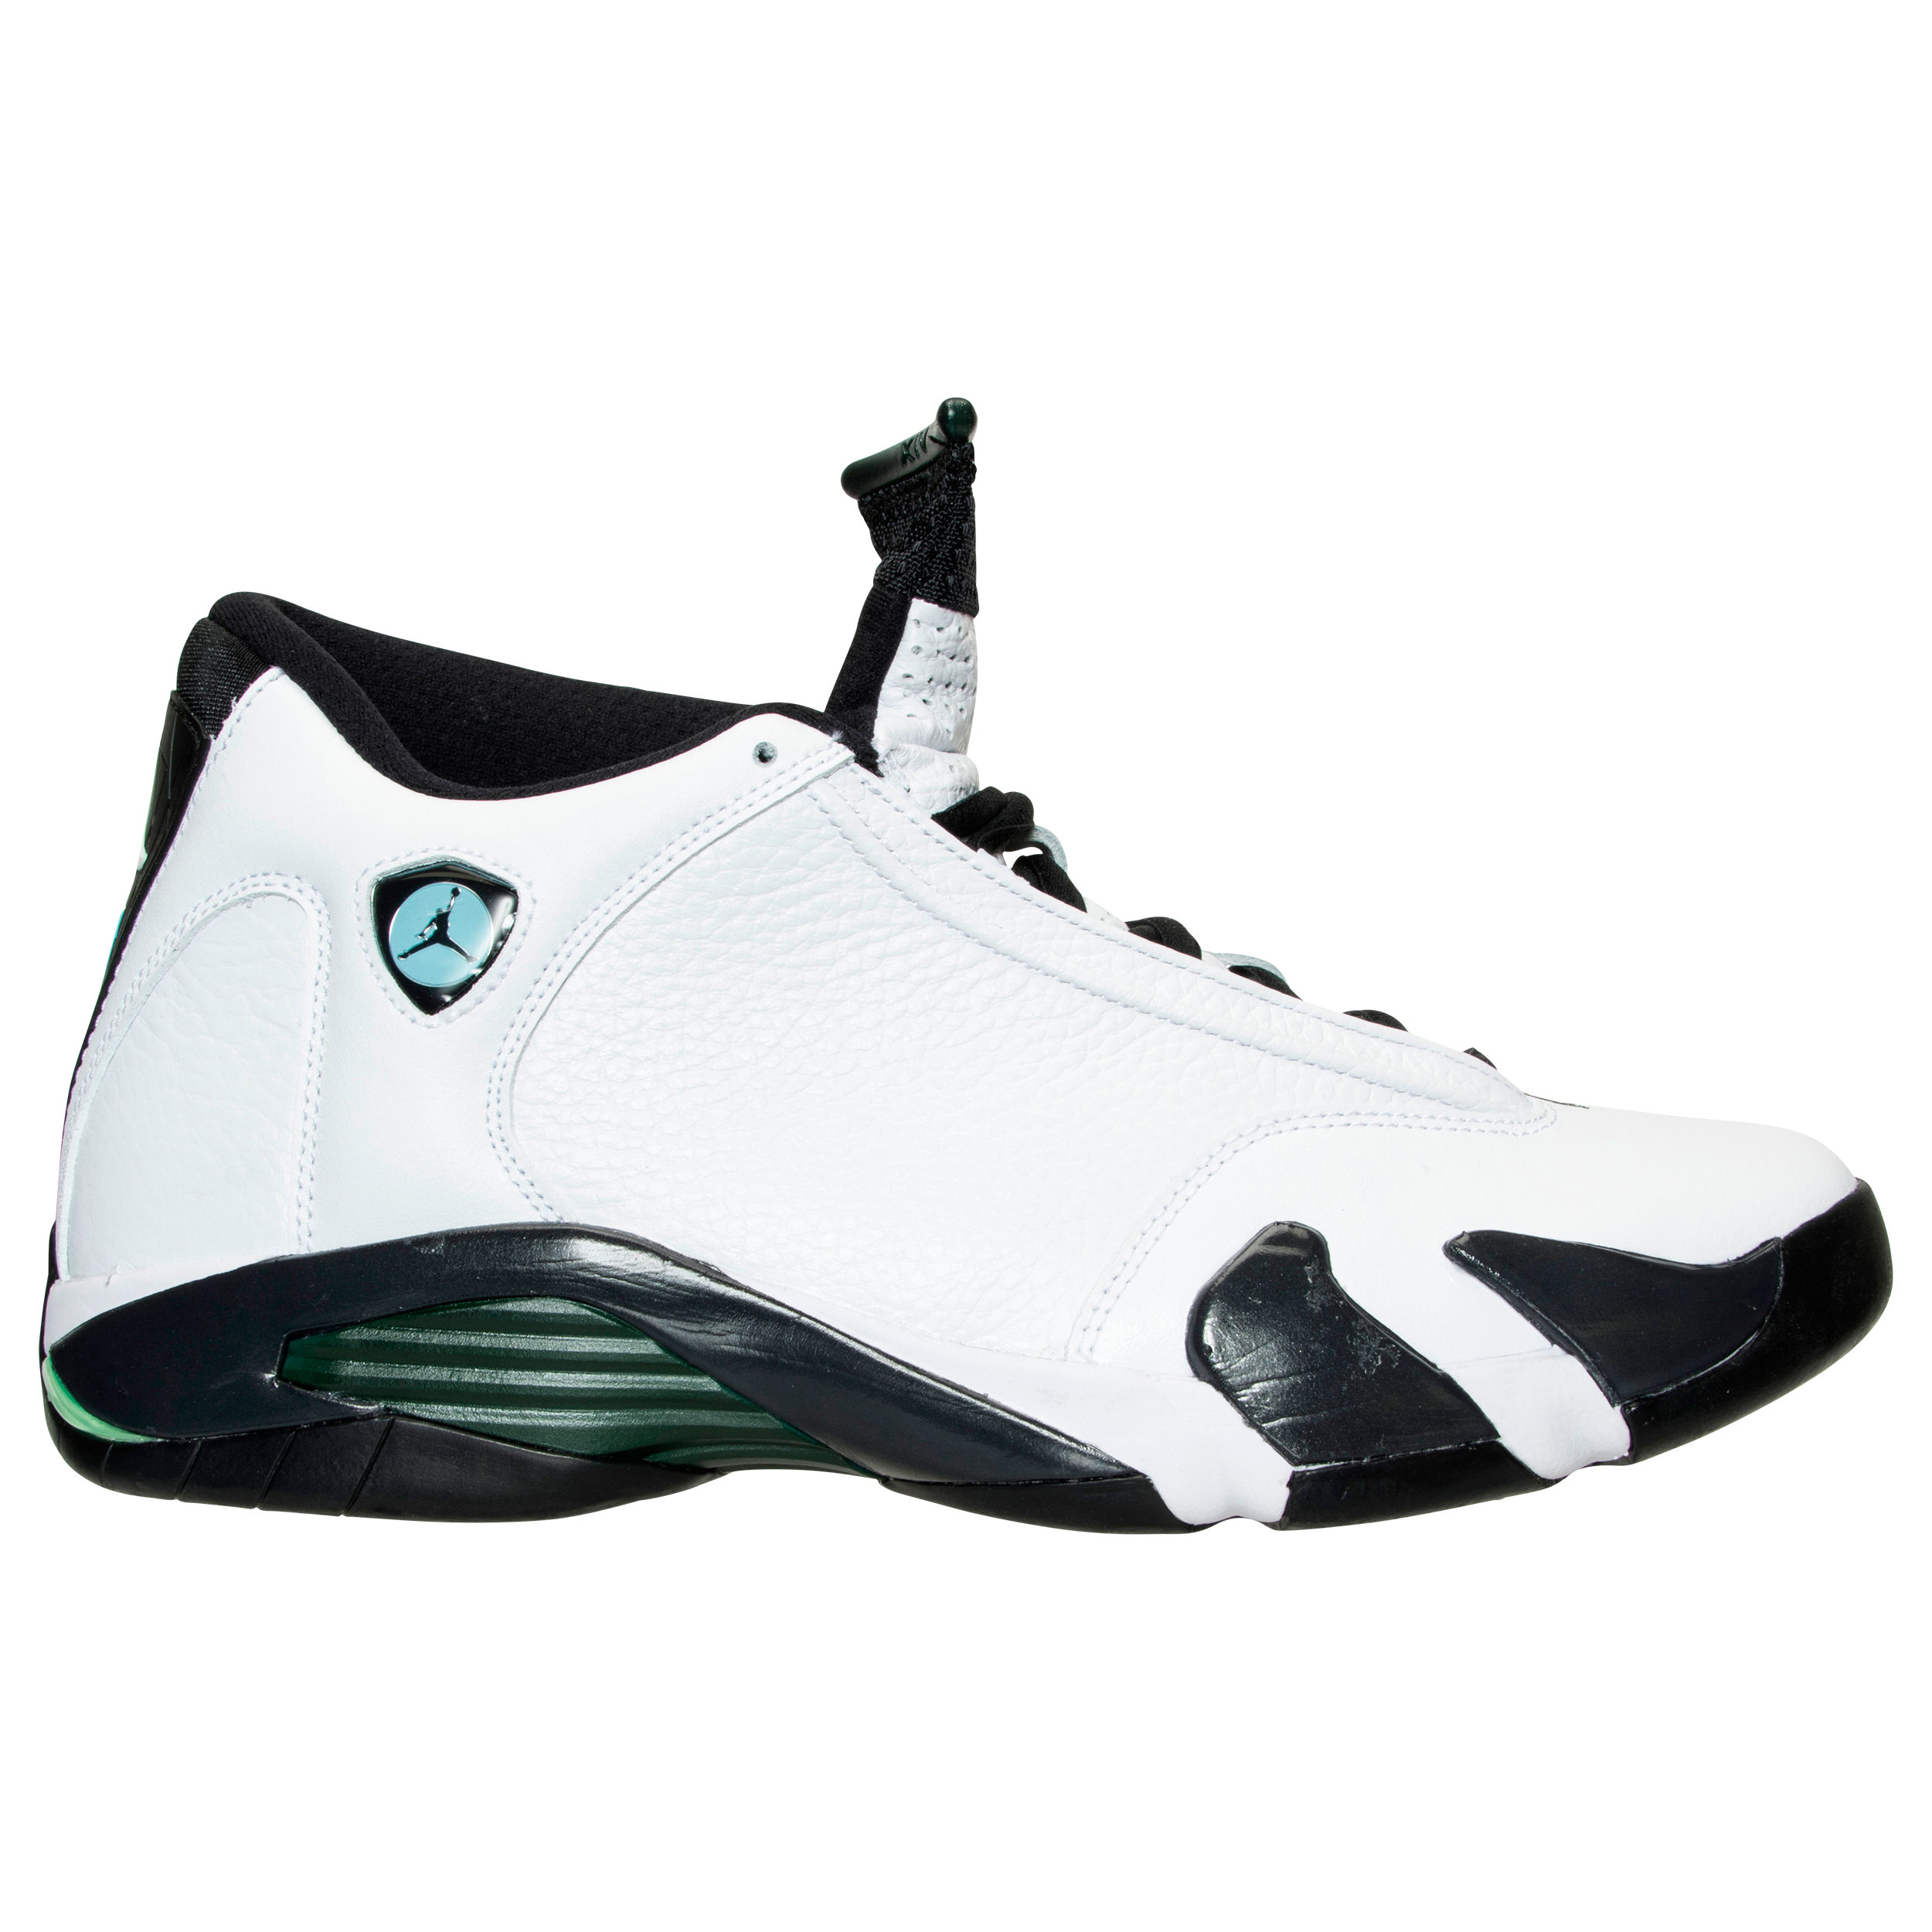 Air Jordan XIV Retro oxidized green 2